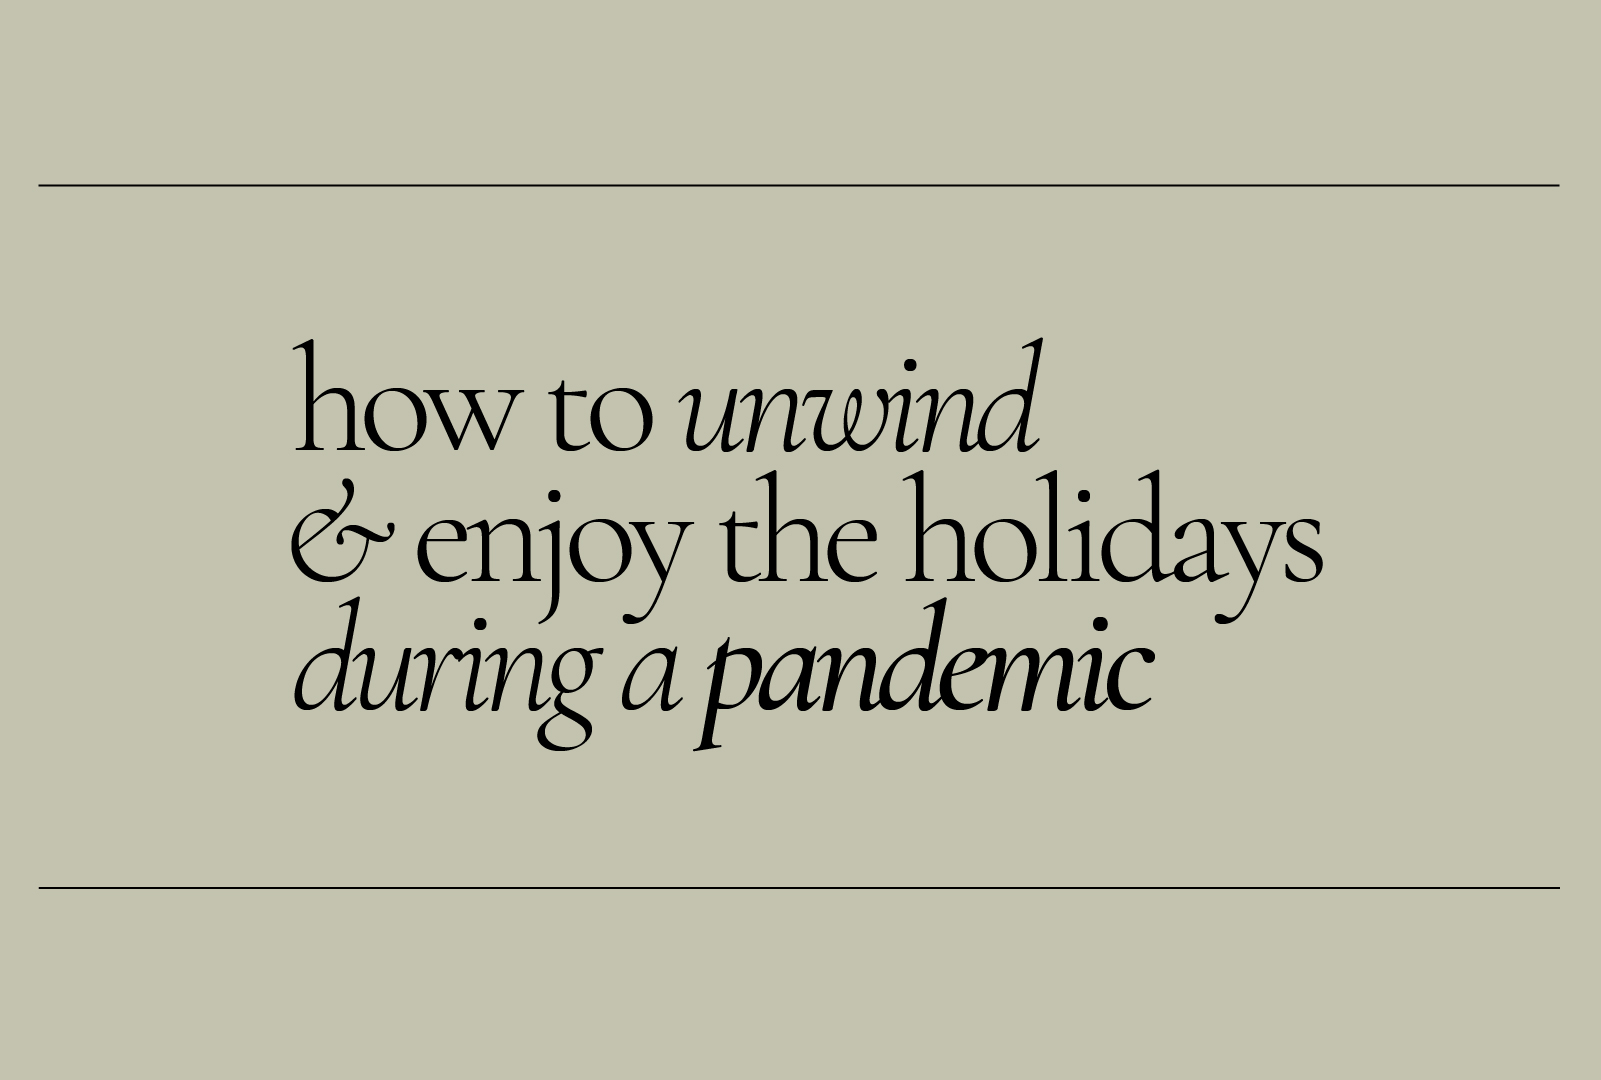 How to Unwind & Enjoy the Holidays During a Pandemic